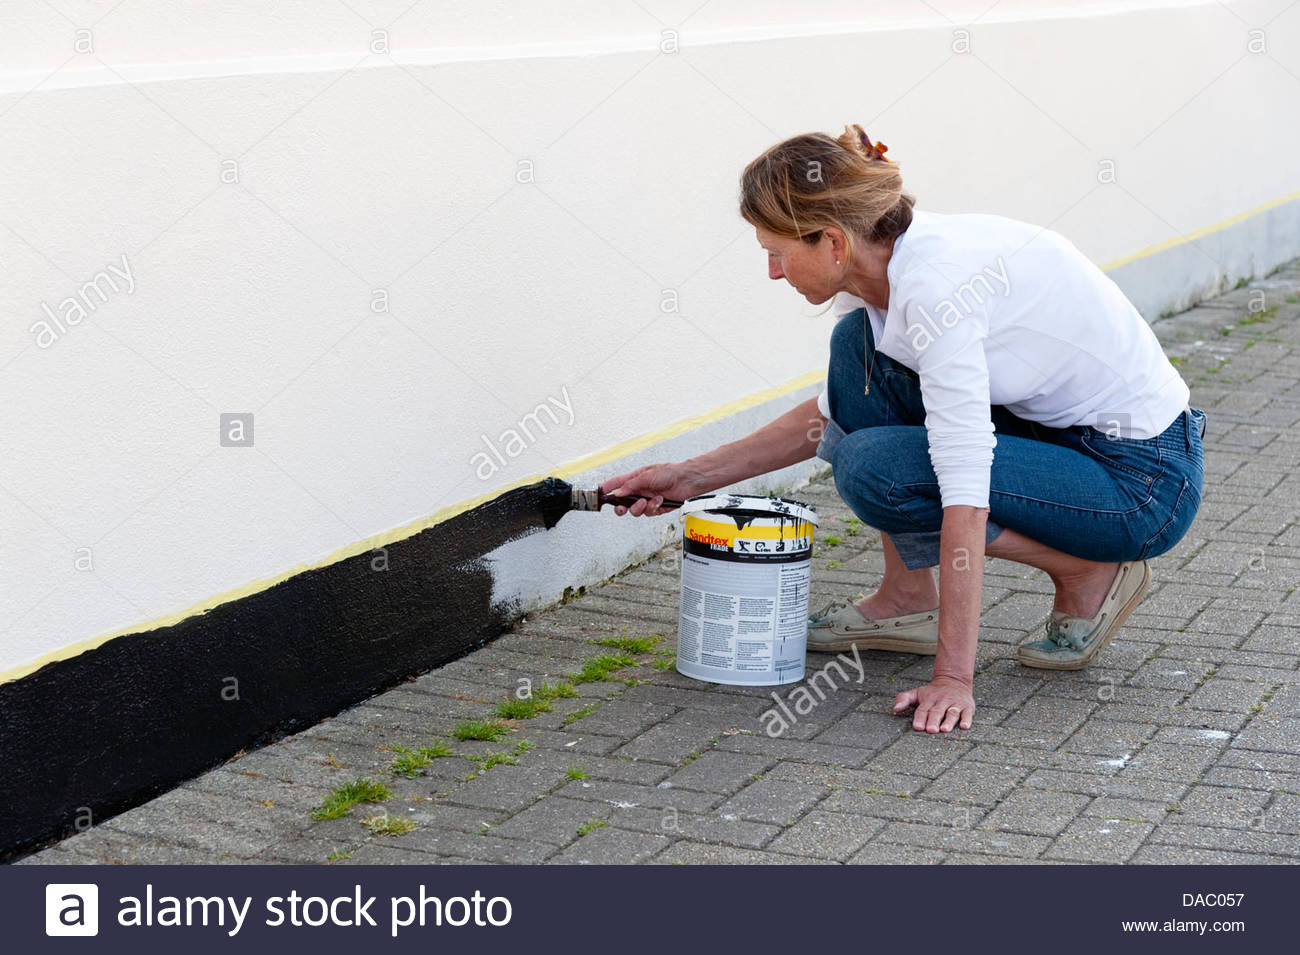 Woman painting an exterior wall, Brixham harbour, Torbay, Devon, UK. - Stock Image